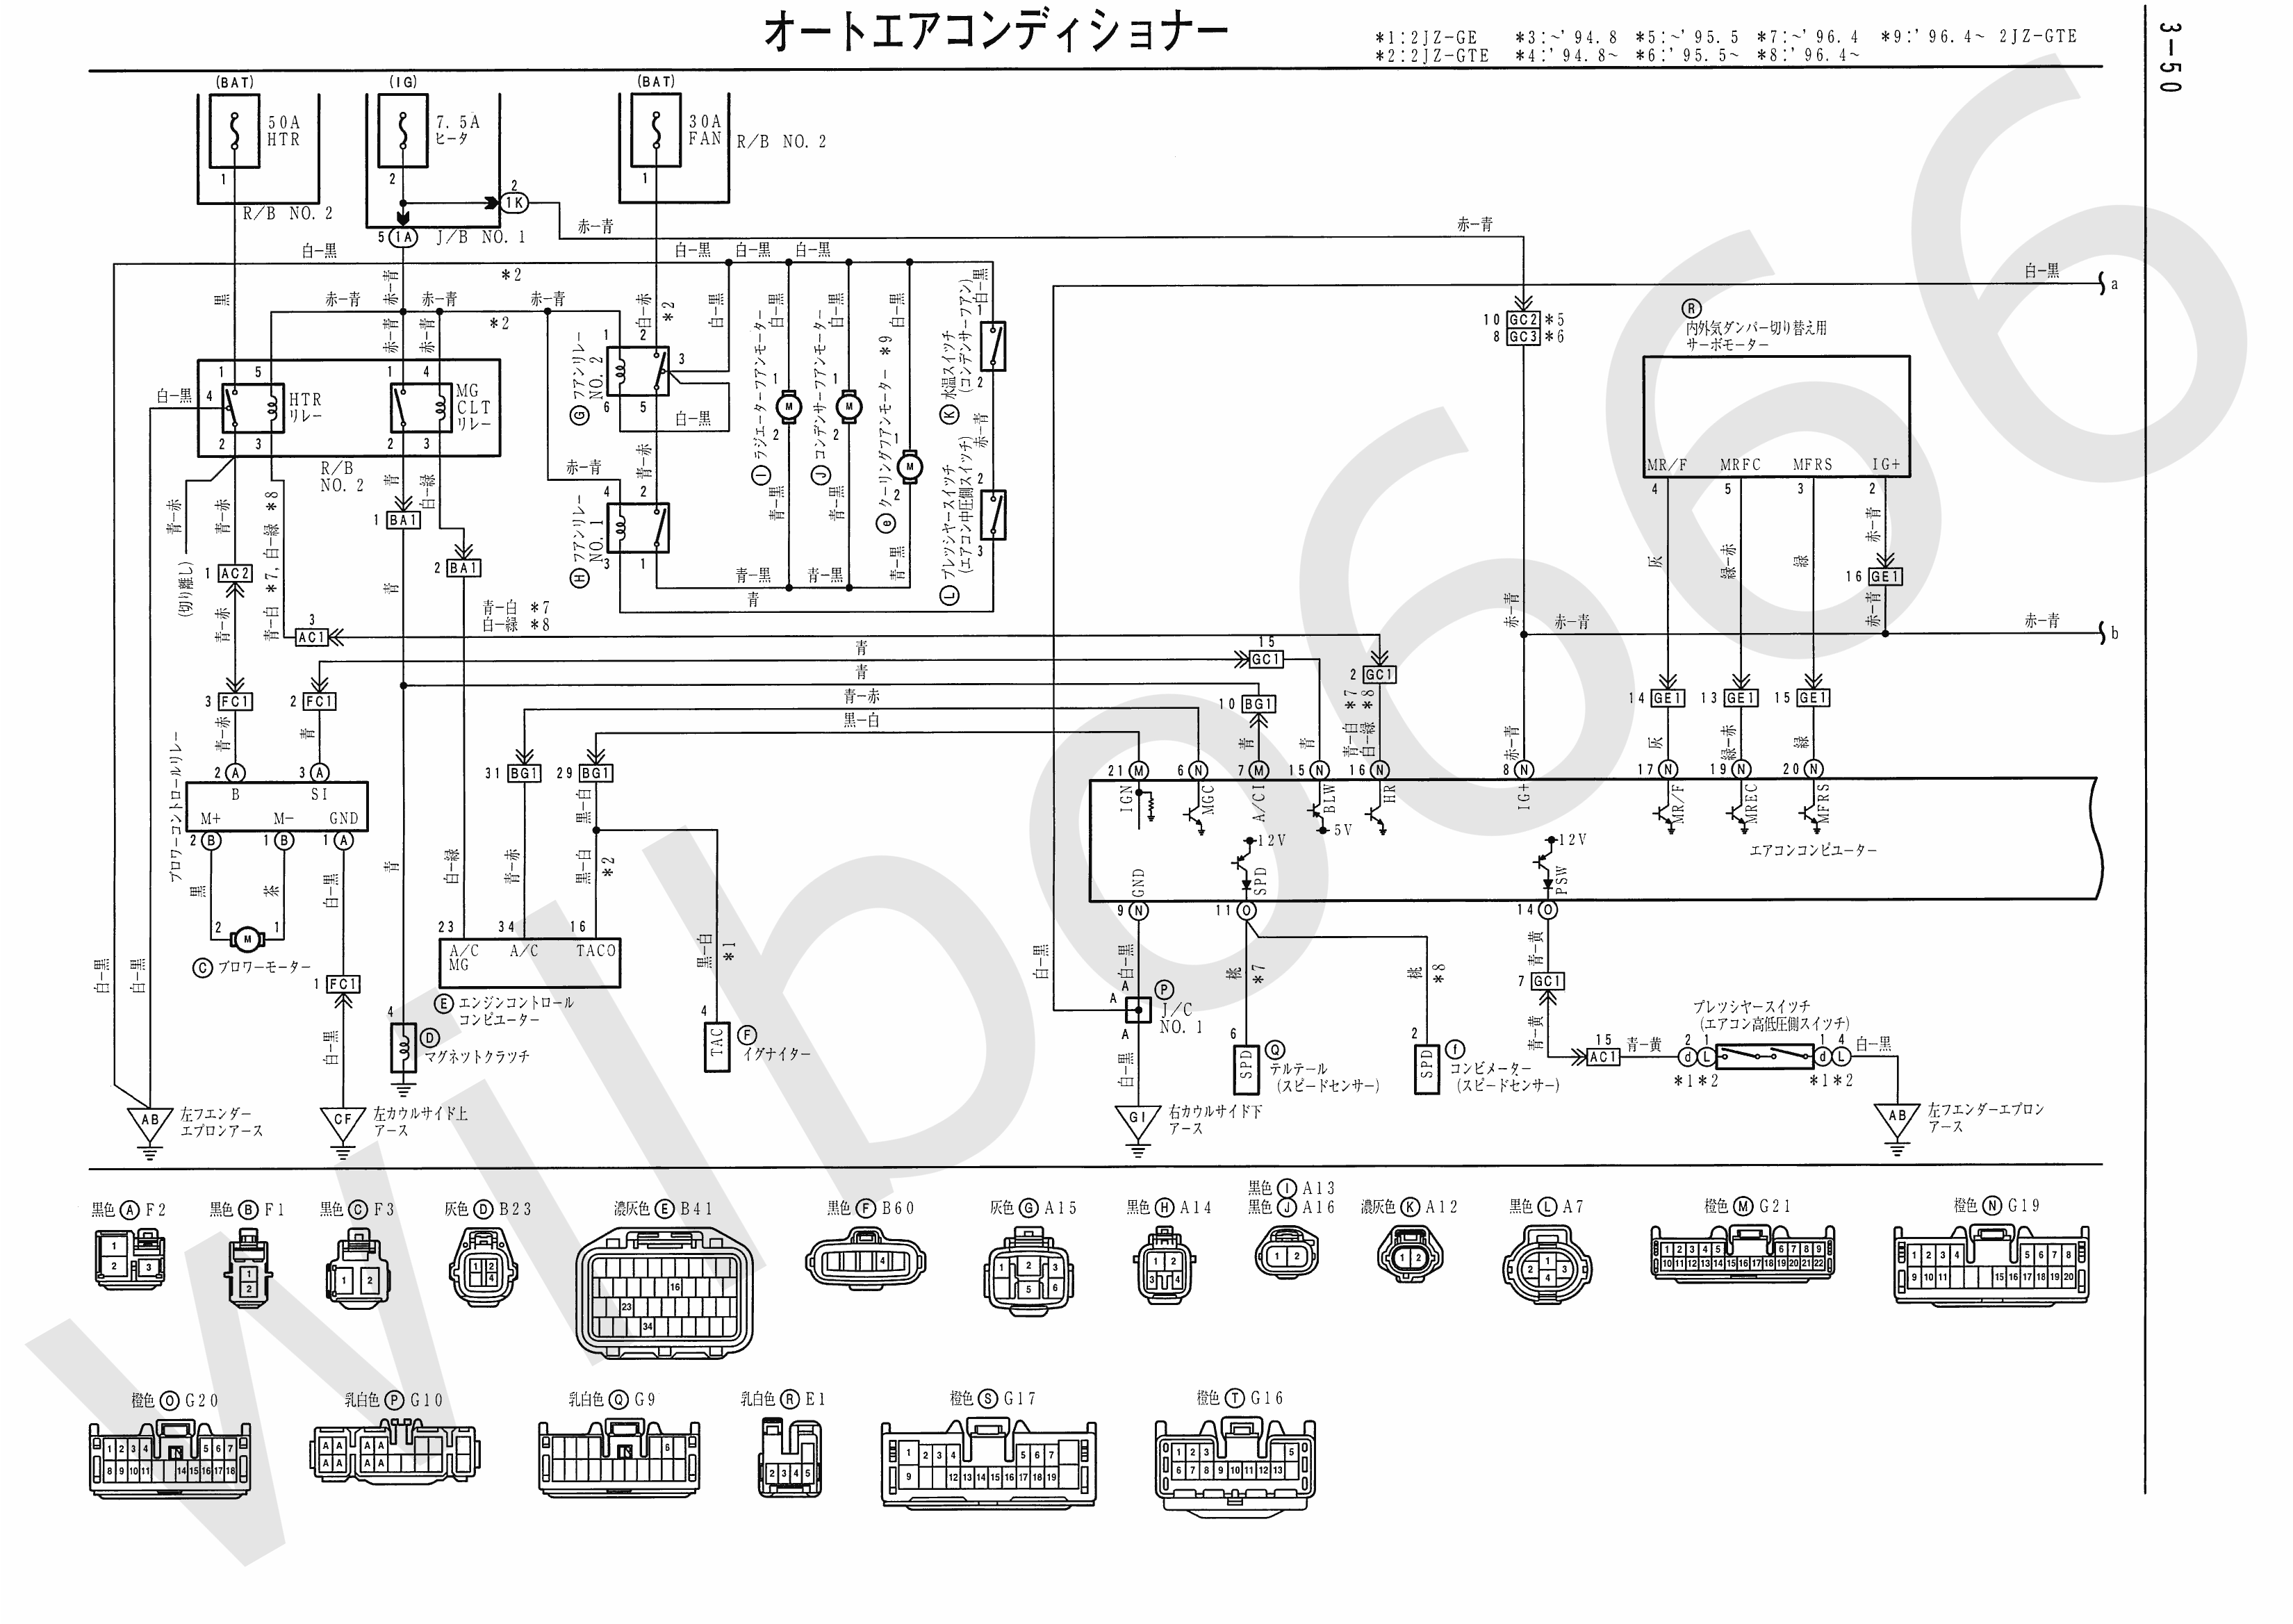 JZA80 Electrical Wiring Diagram 6742505 3 50 wilbo666 2jz ge jza80 supra engine wiring 7mge wiring harness at crackthecode.co